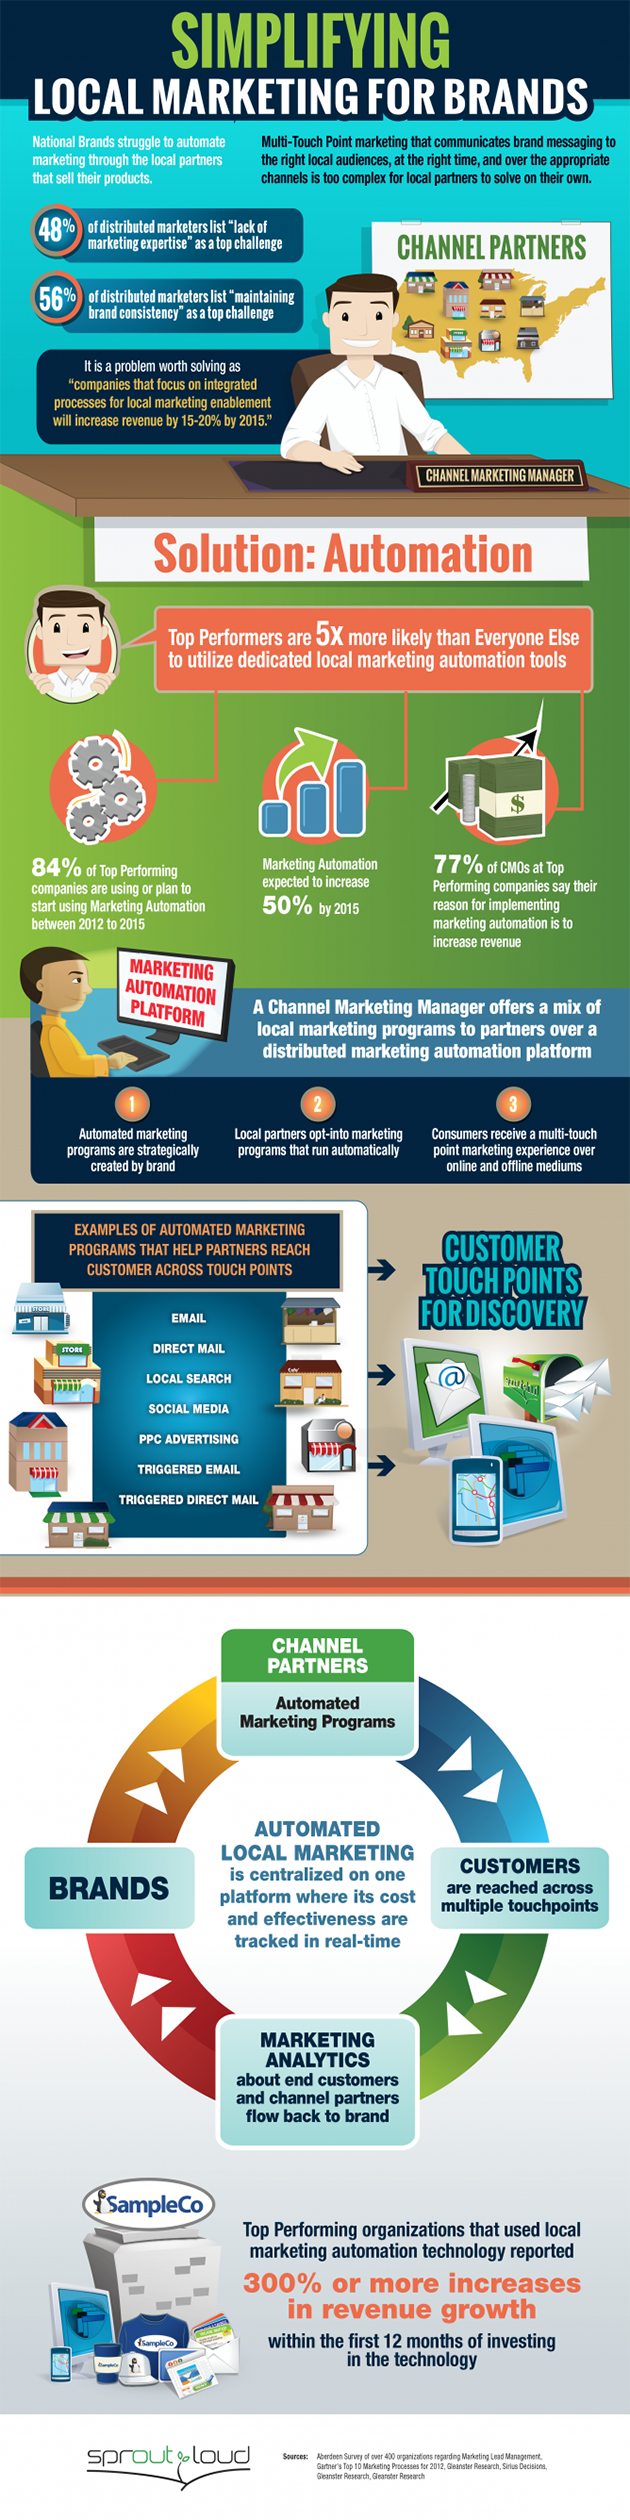 Infographic - Simplifying Local Marketing for Brands - Sproutloud - K